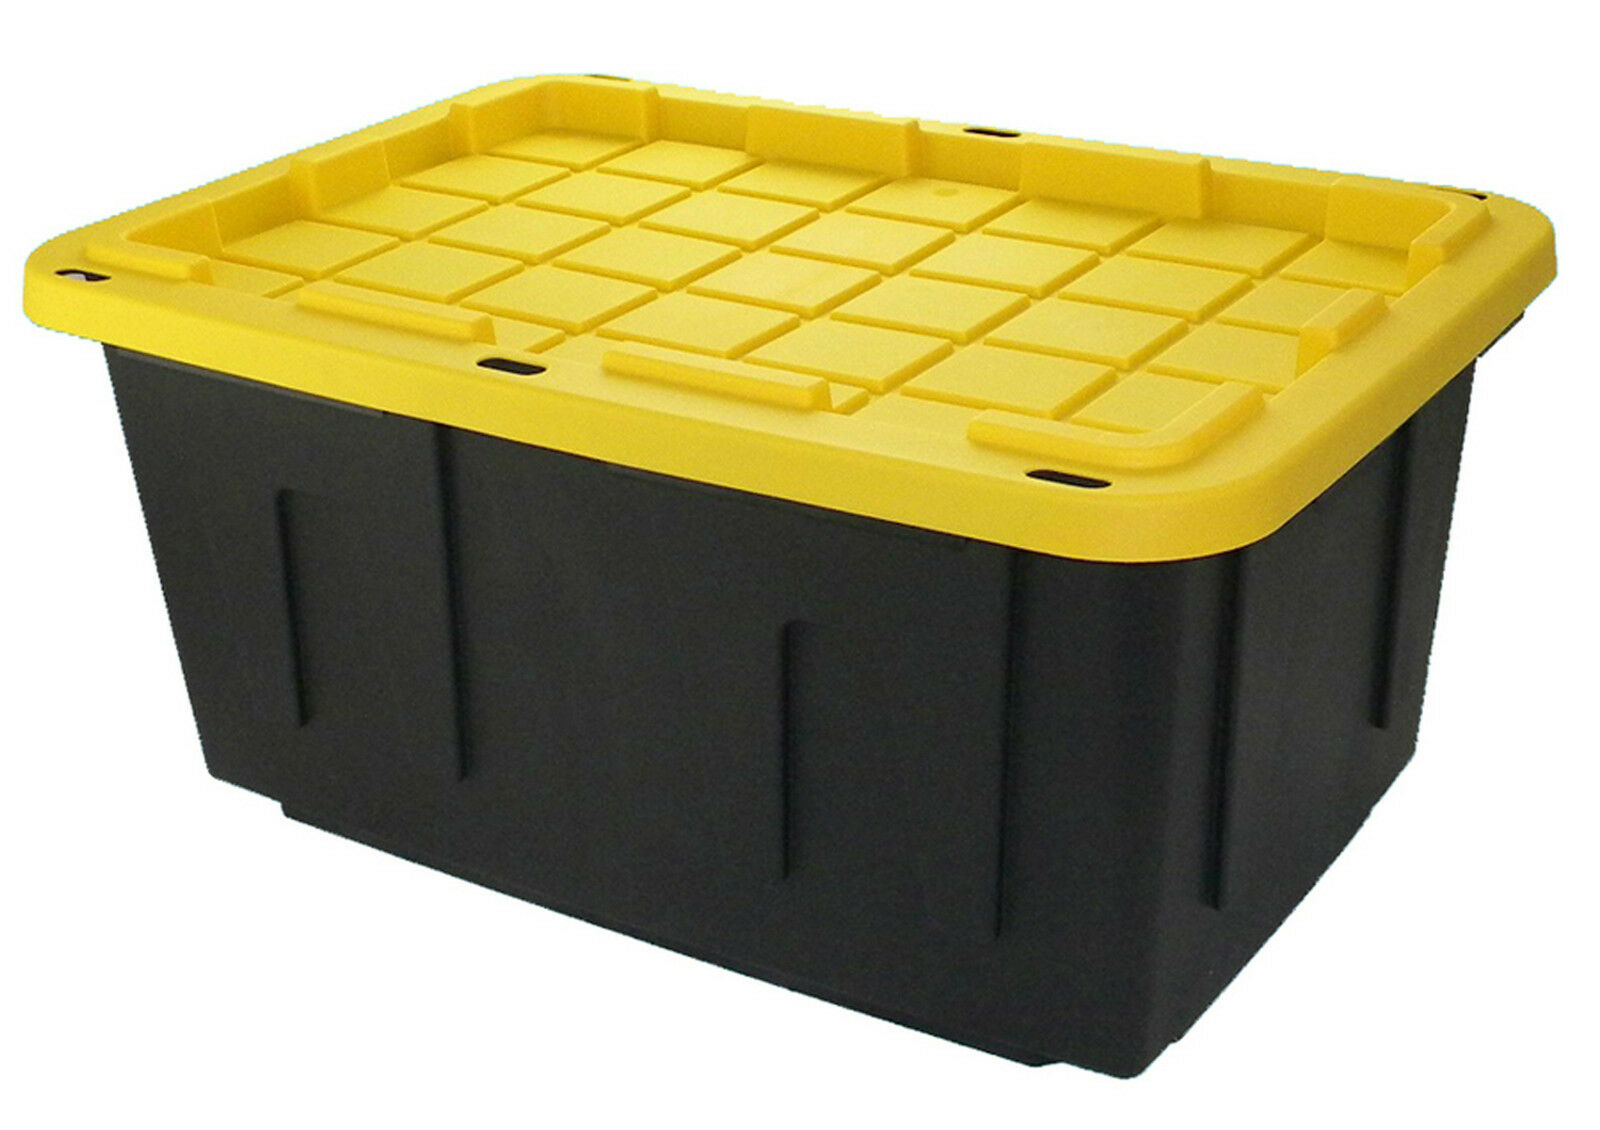 heavy duty large 26x18x12 15gallon industrial plastic storage container tote 6pk ebay. Black Bedroom Furniture Sets. Home Design Ideas